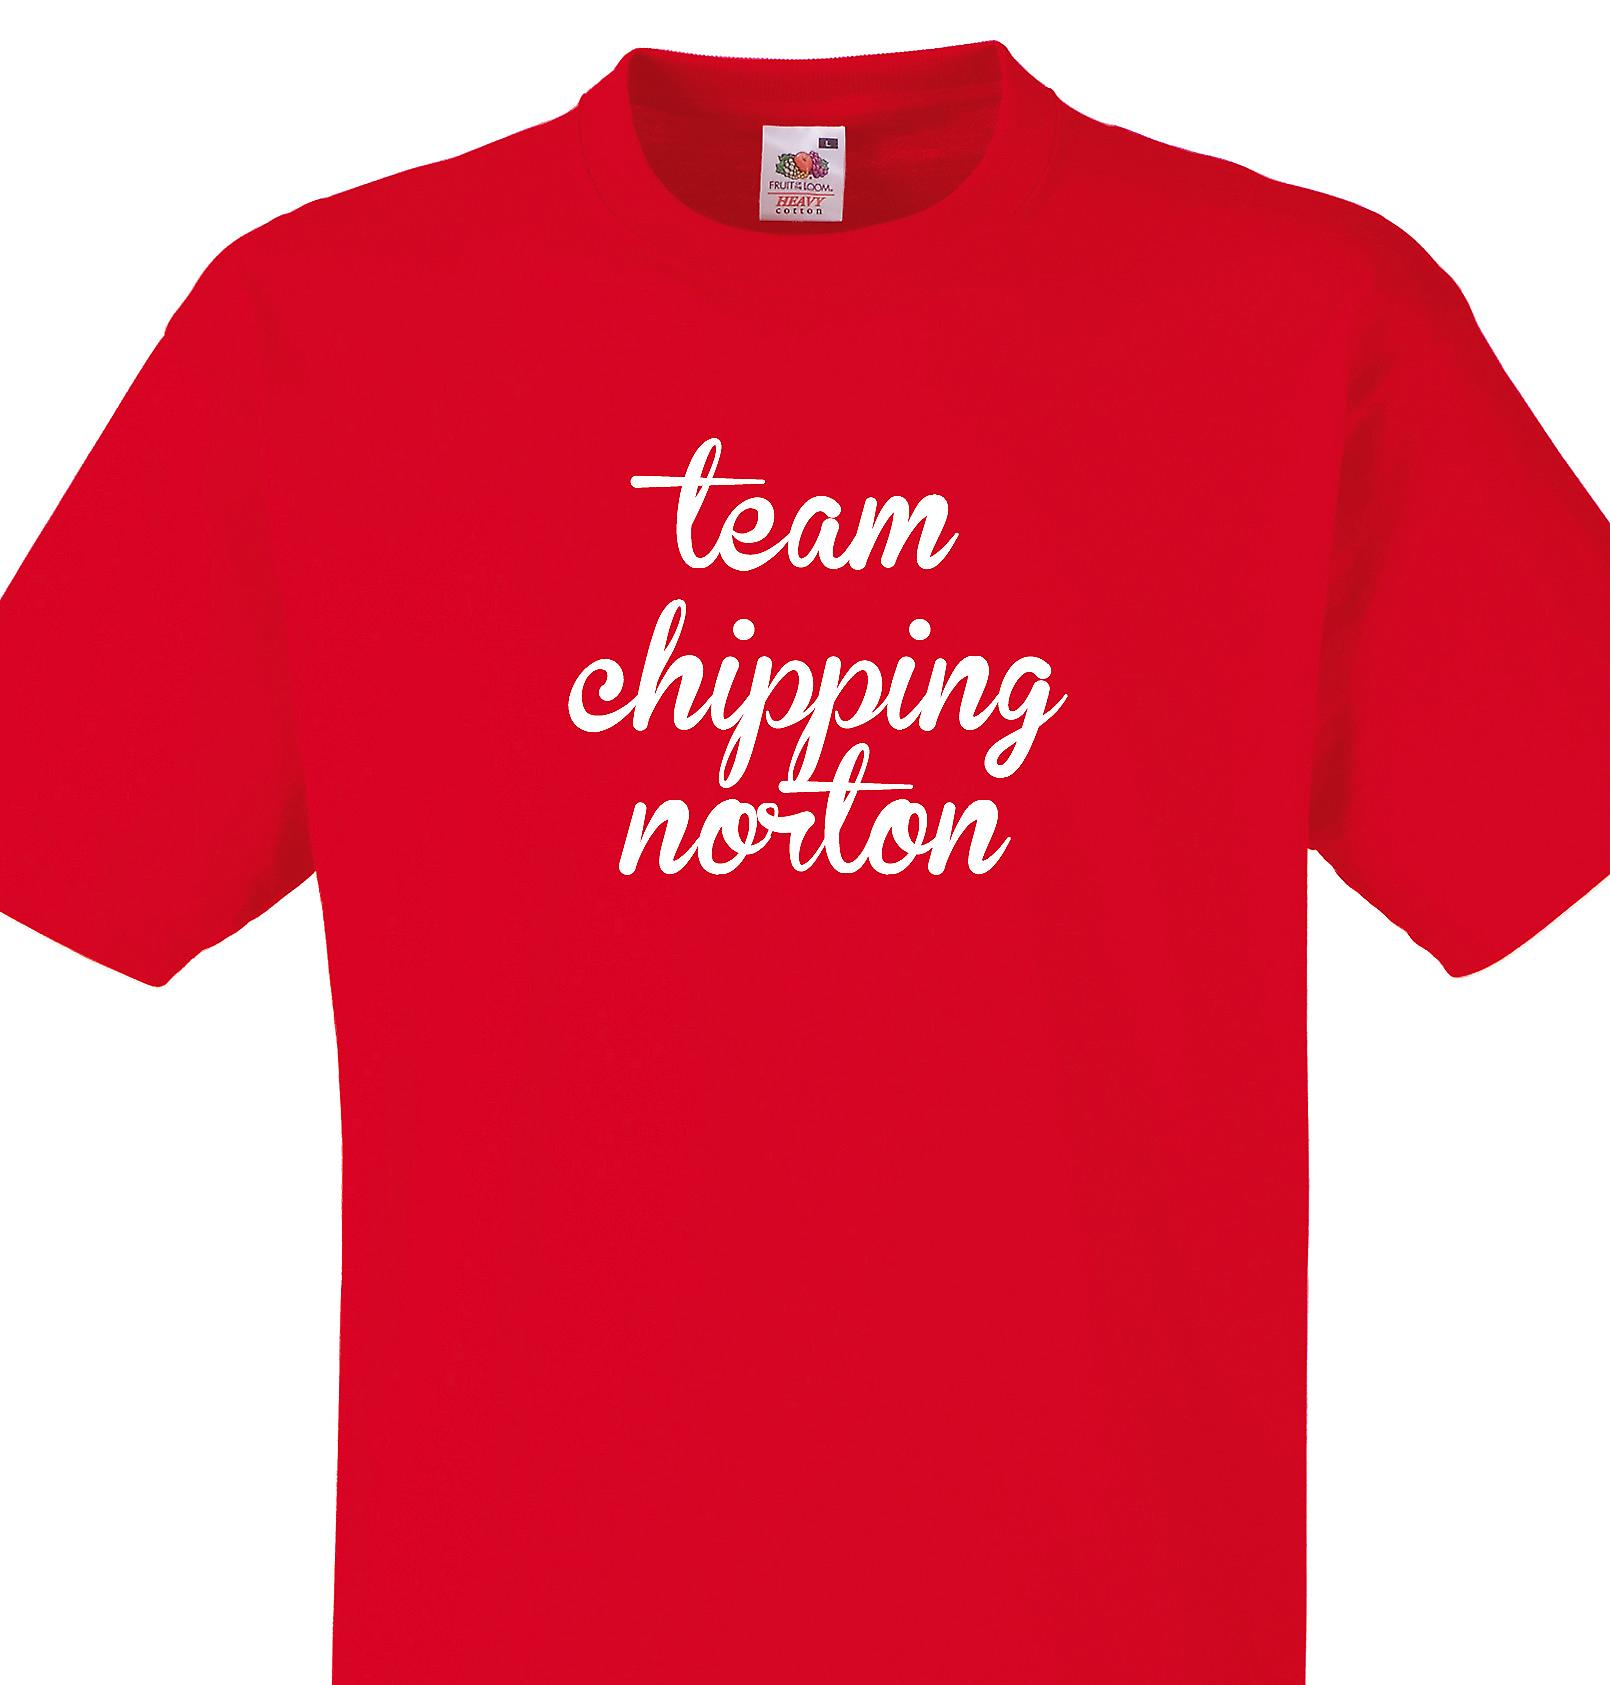 Team Chipping norton Red T shirt